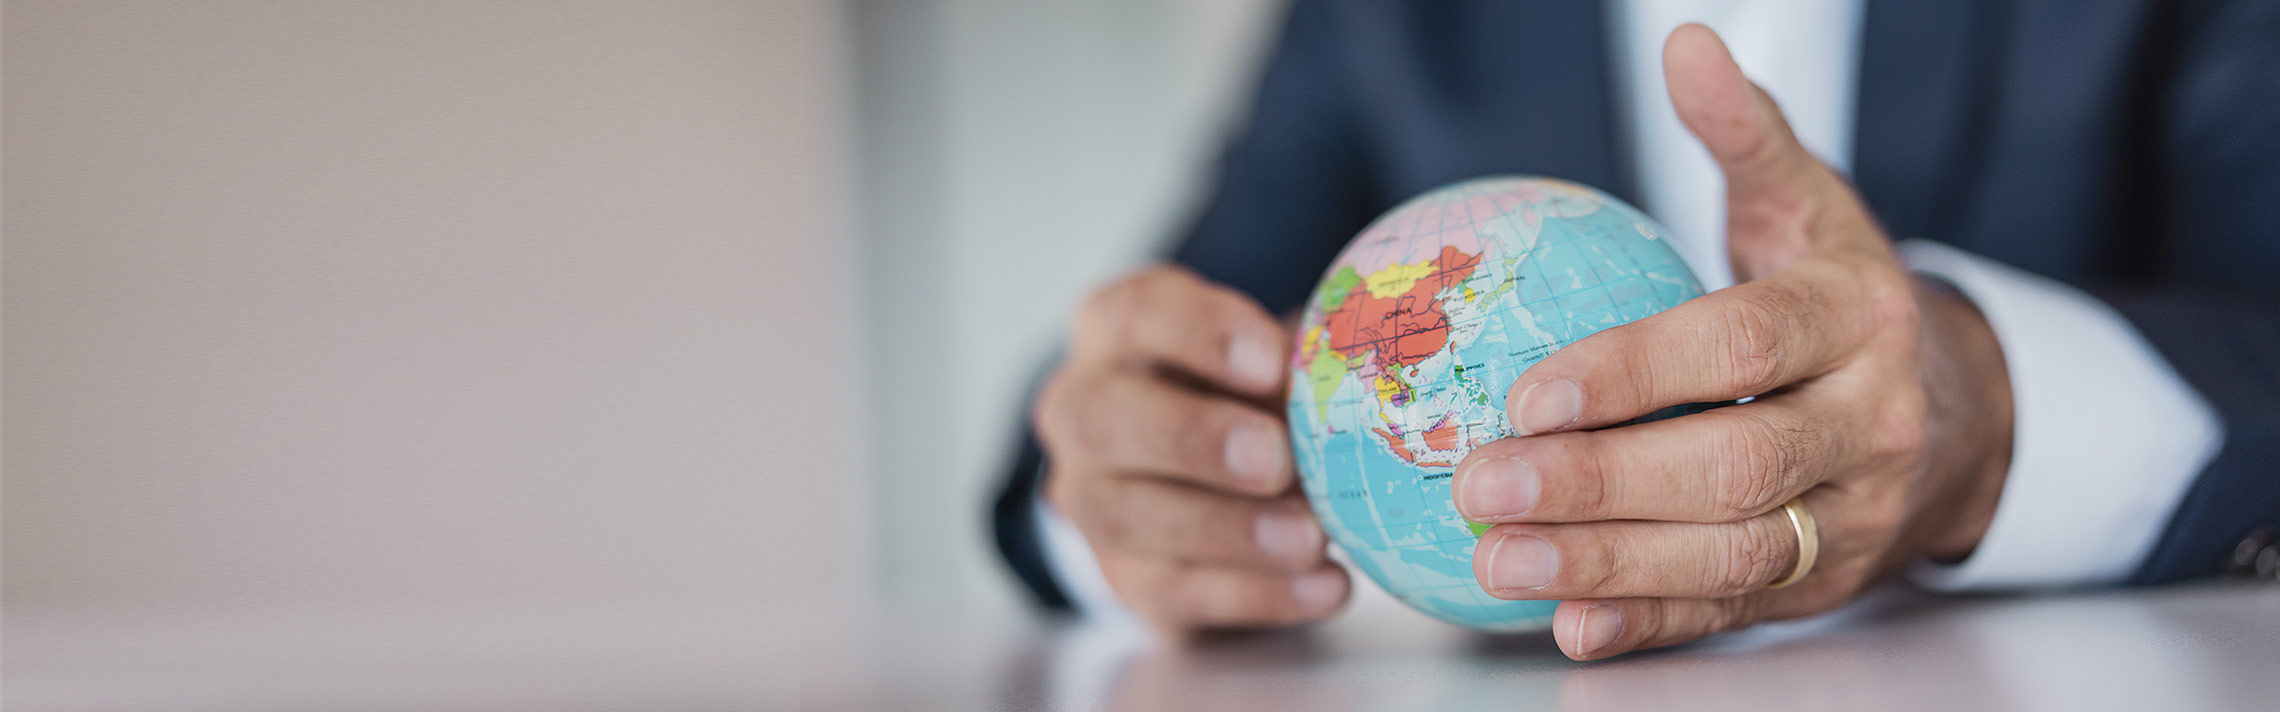 Close-up of hands of businessman holding globe.